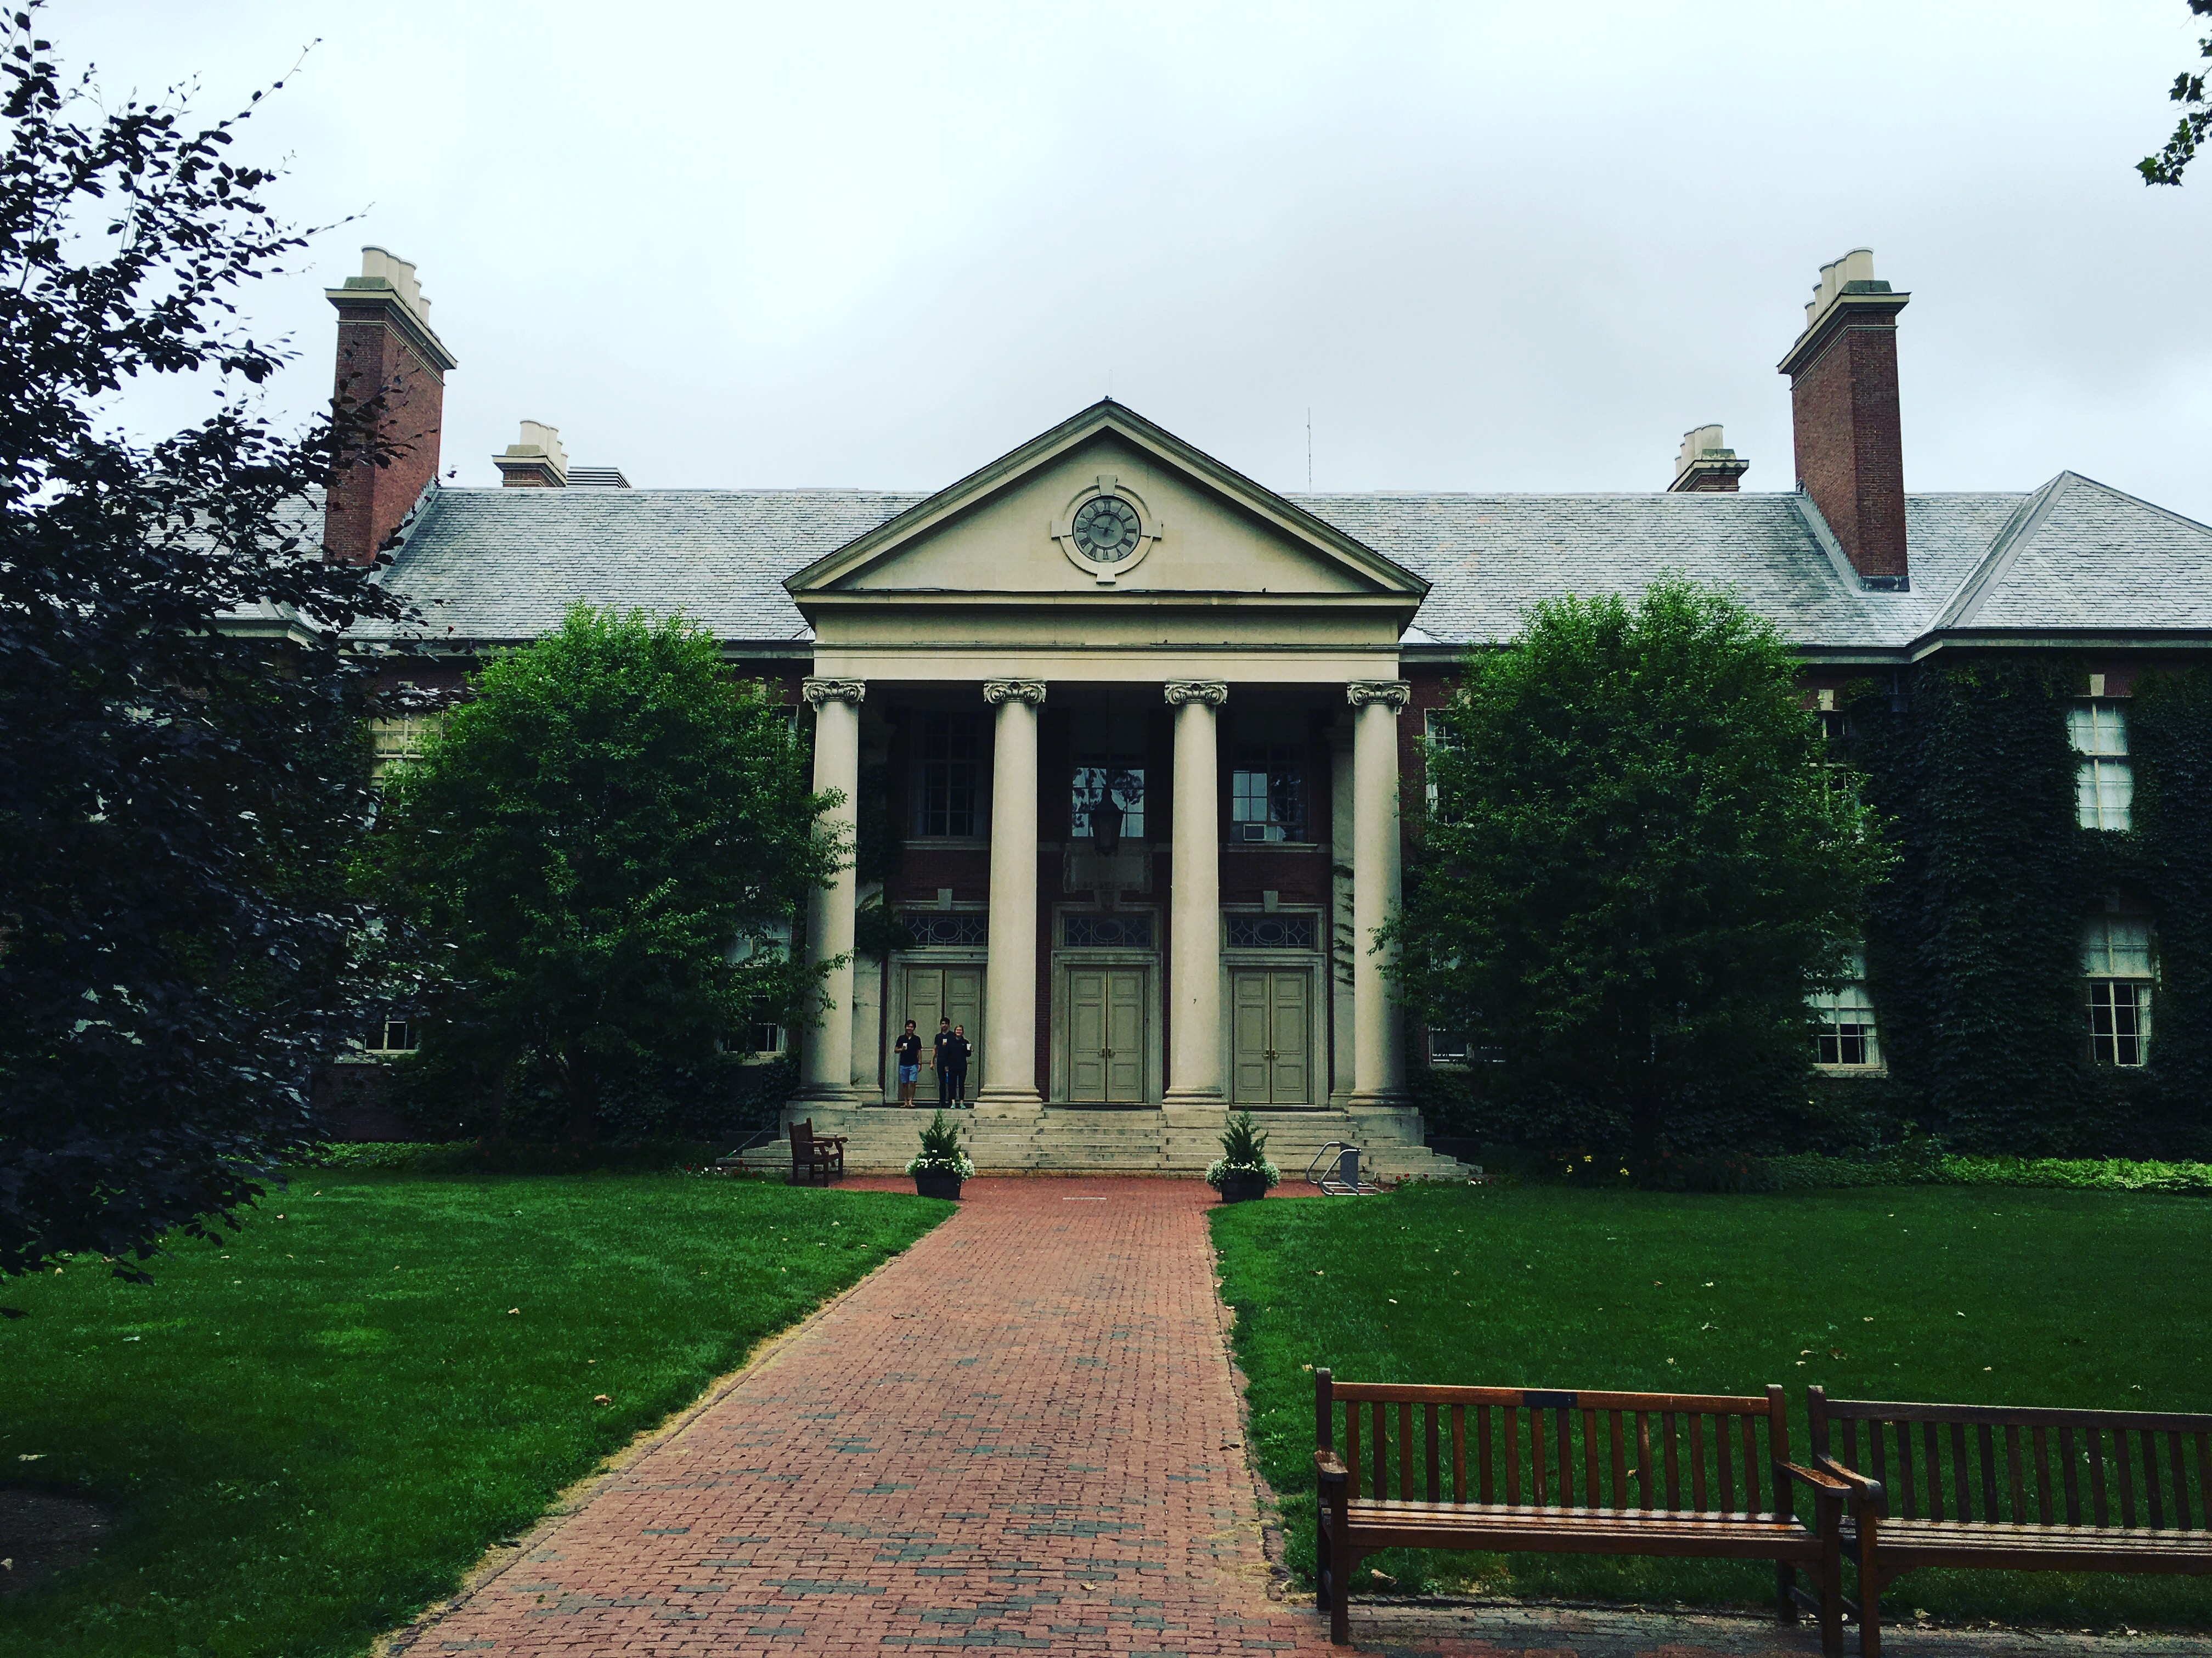 The exterior of Deerfield Academy's Main School Building as seen from the road.